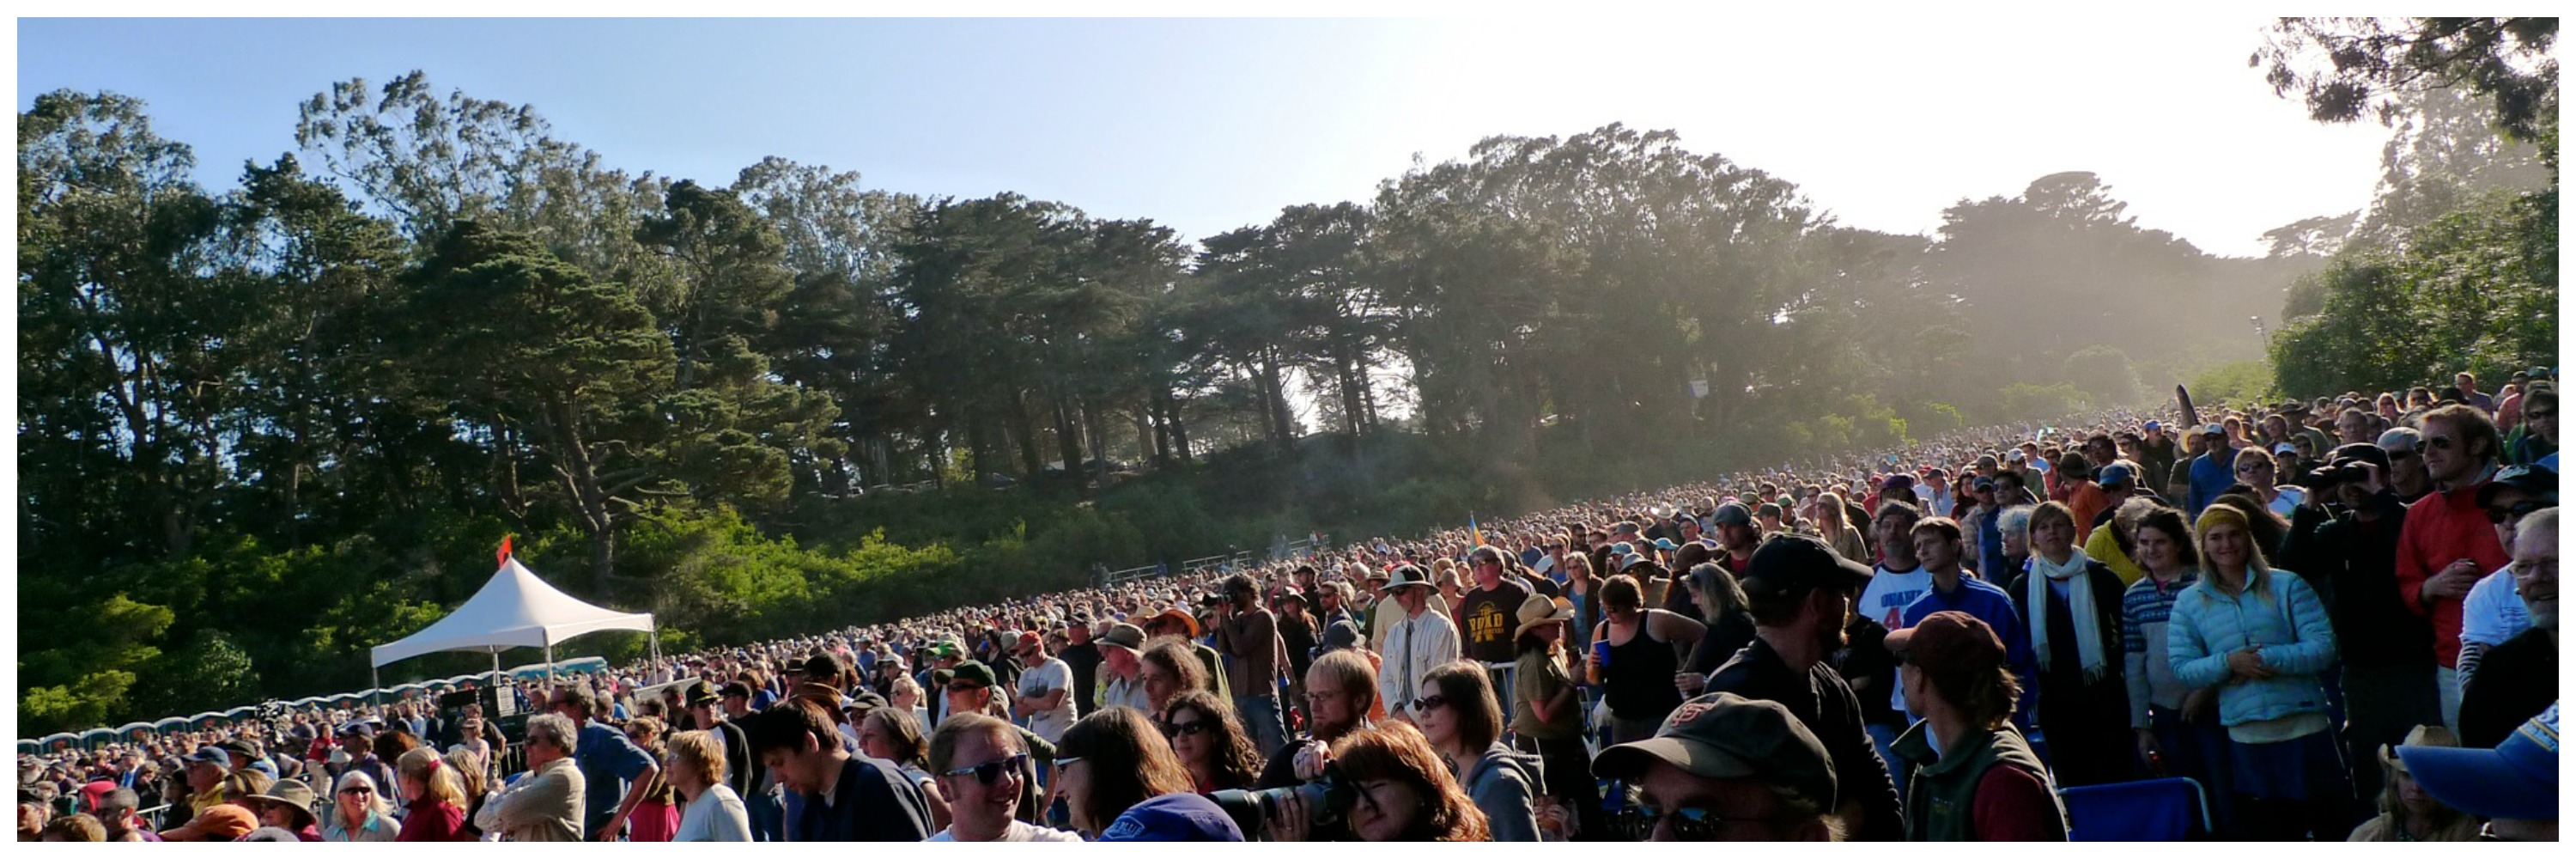 Hardly Strictly Bluegrass | © Ann Larie Valentine/Flickr